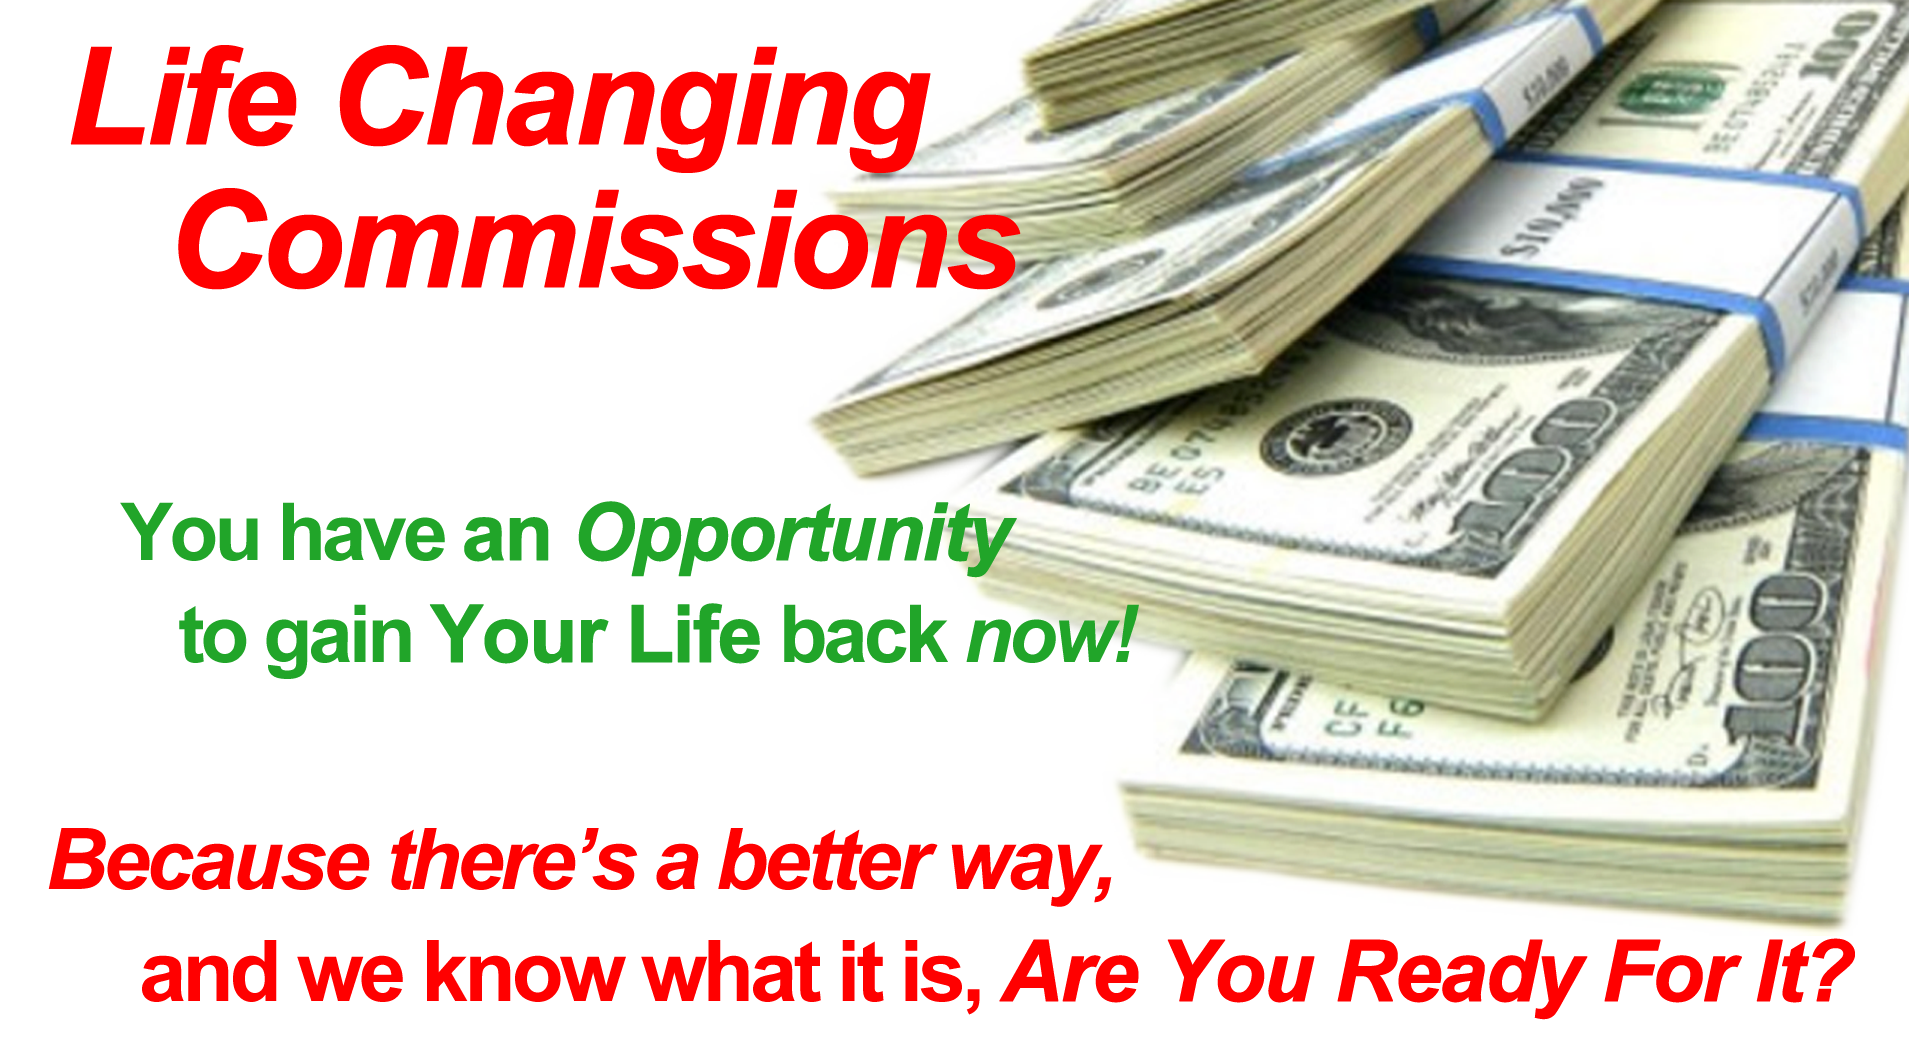 TZG_Life_Changing_Commissions_Are_You_Ready_For_It